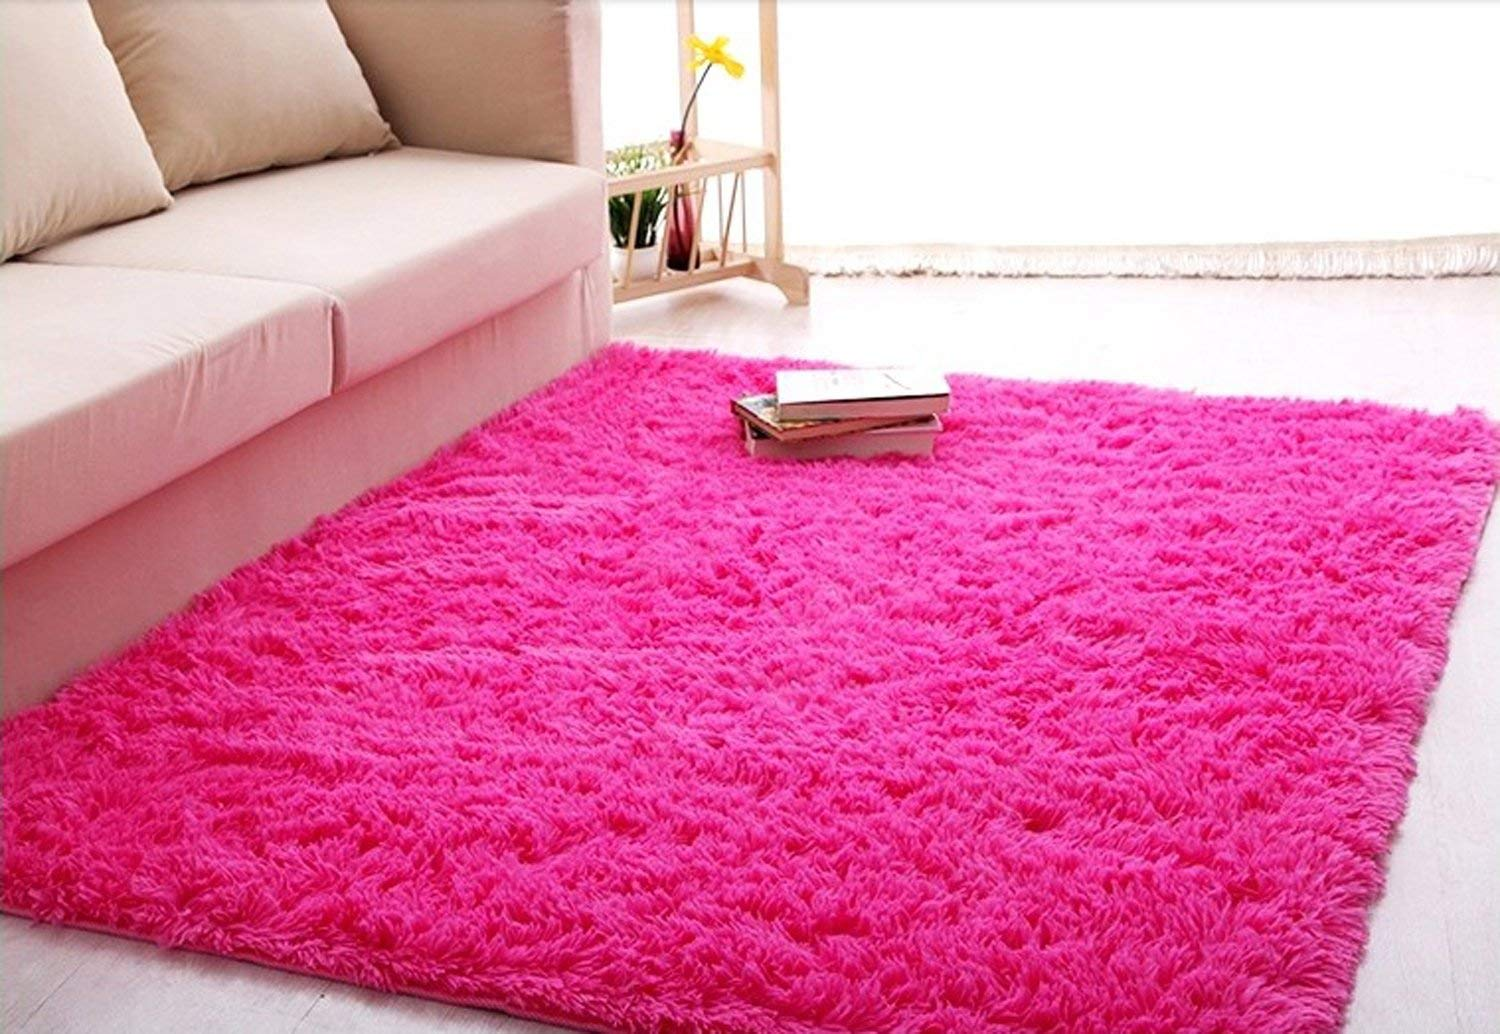 pink rug amazon.com: forever lover soft indoor morden shaggy area rug pad, 2.5 x GXEGYSD